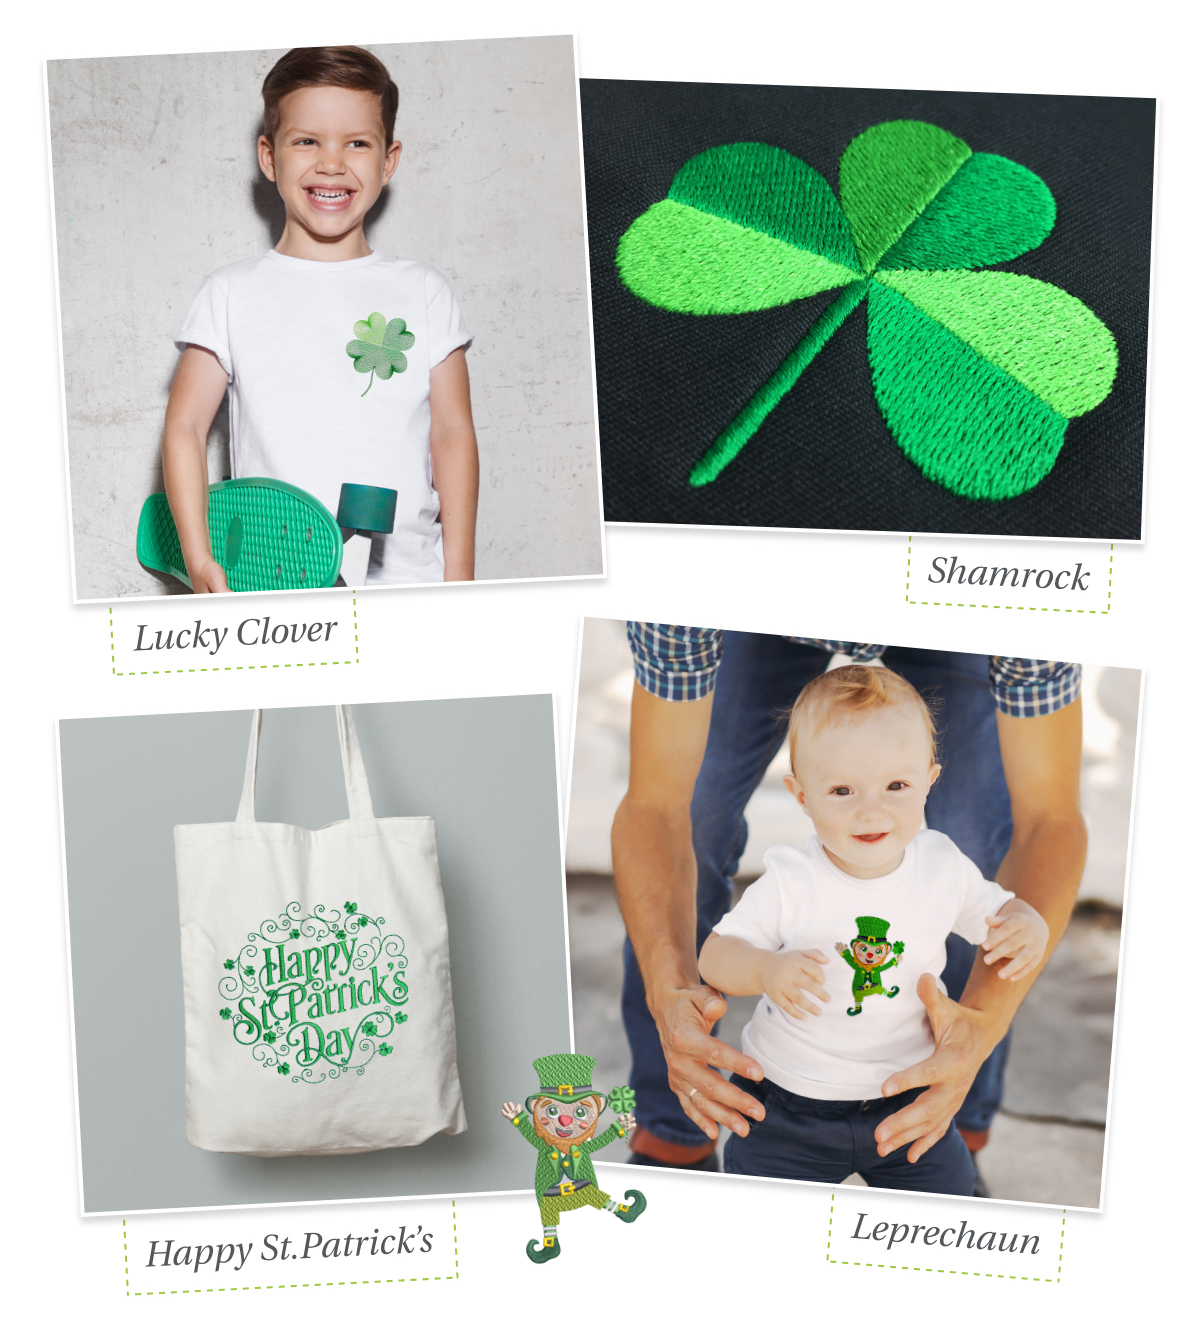 St Patrick's Day free designs